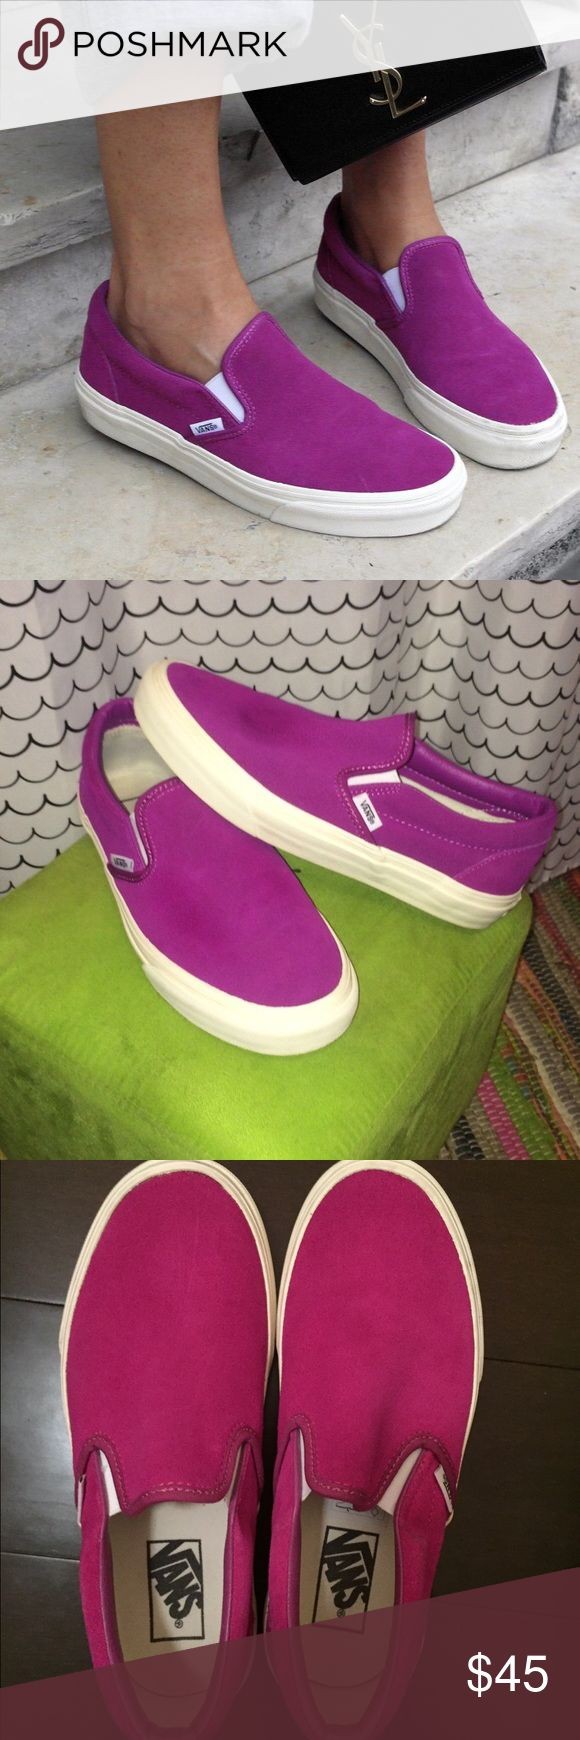 Unique Bright Suede Fuchsia/ Magenta Vans Slip Ons Rare, unique. Suede Slip on Vans. Like new-no stains or wear on them. Incredibly comfortable. So cute just not my size. ❤️ Women's US size: 7 / Men's US size: 5.5 Vans Shoes Sneakers